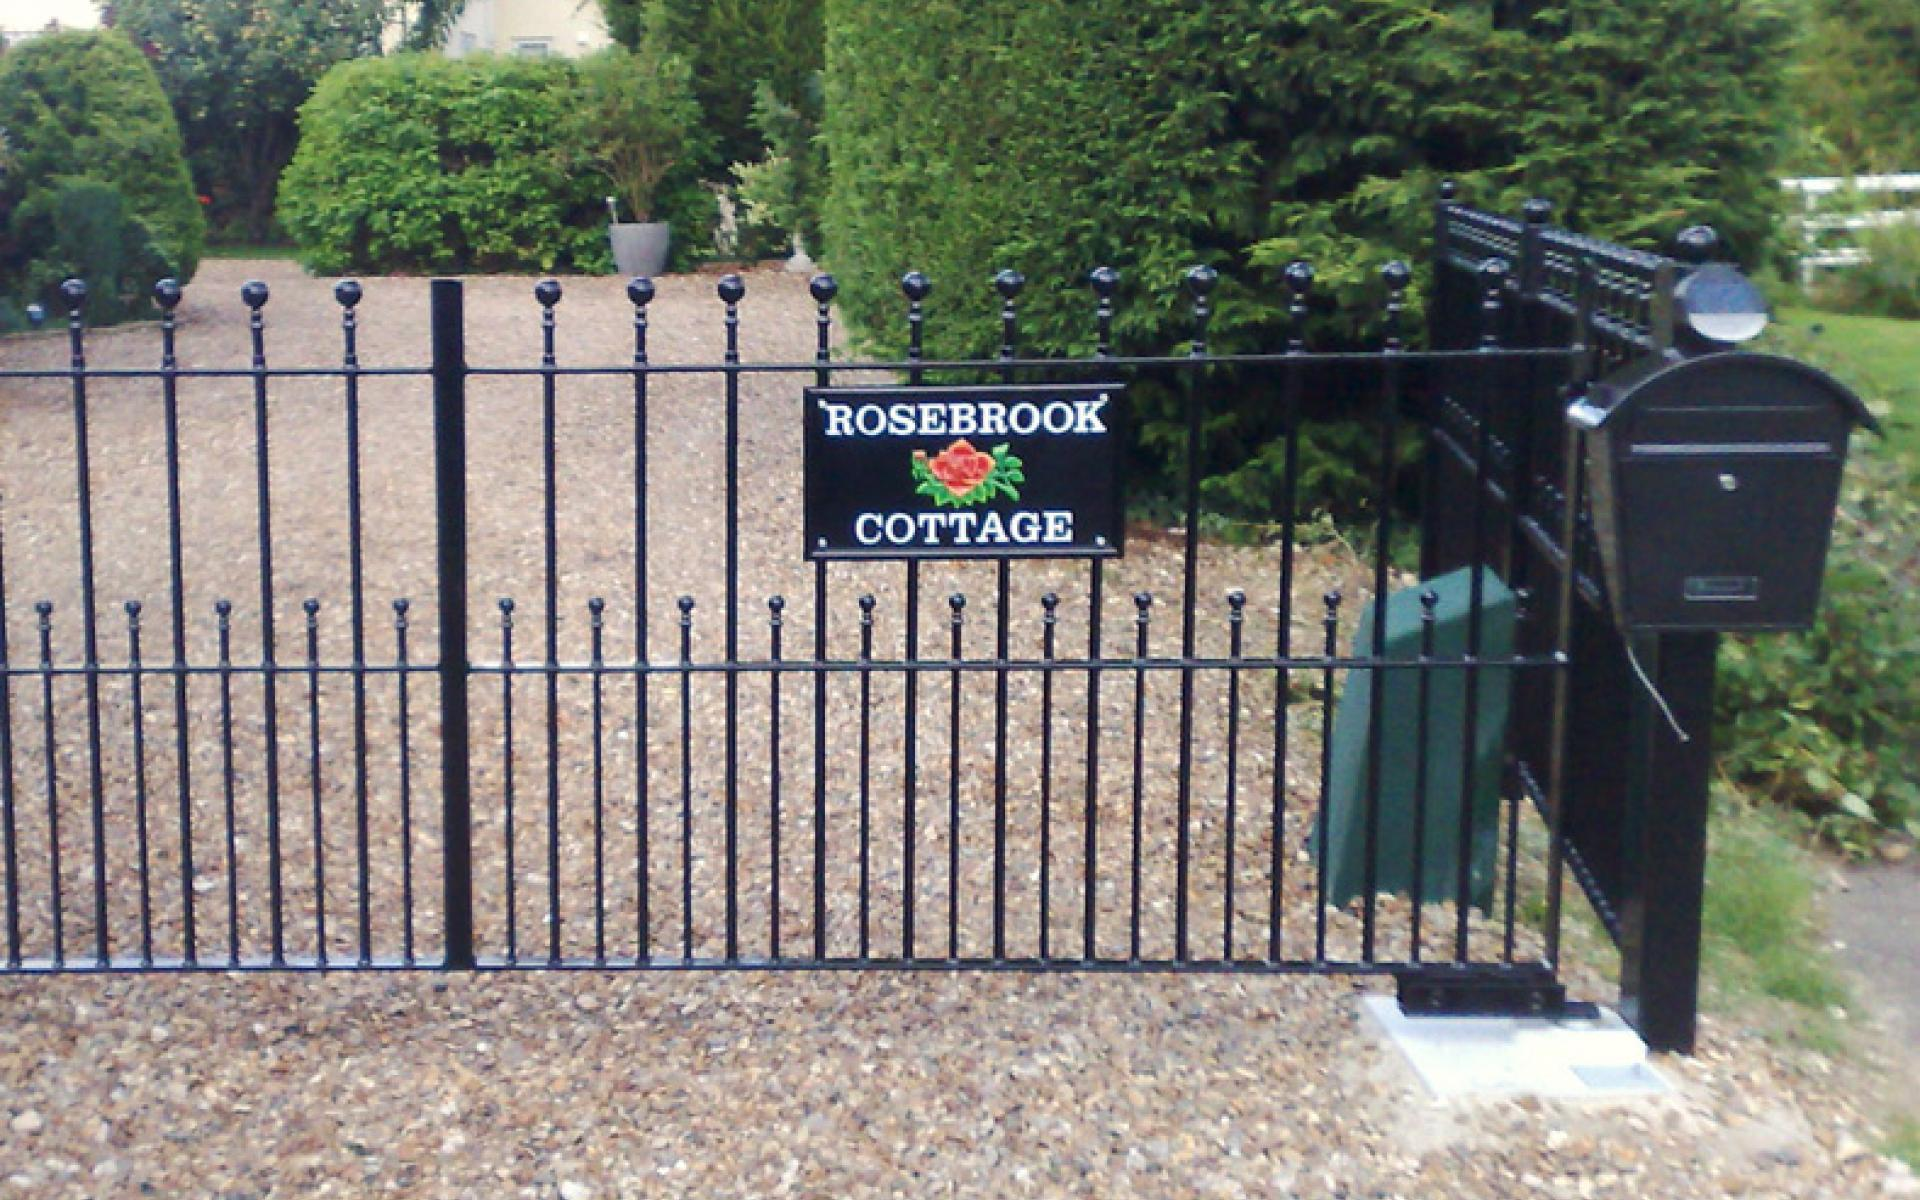 Rosebrook wrought iron gate and railings with underground automation